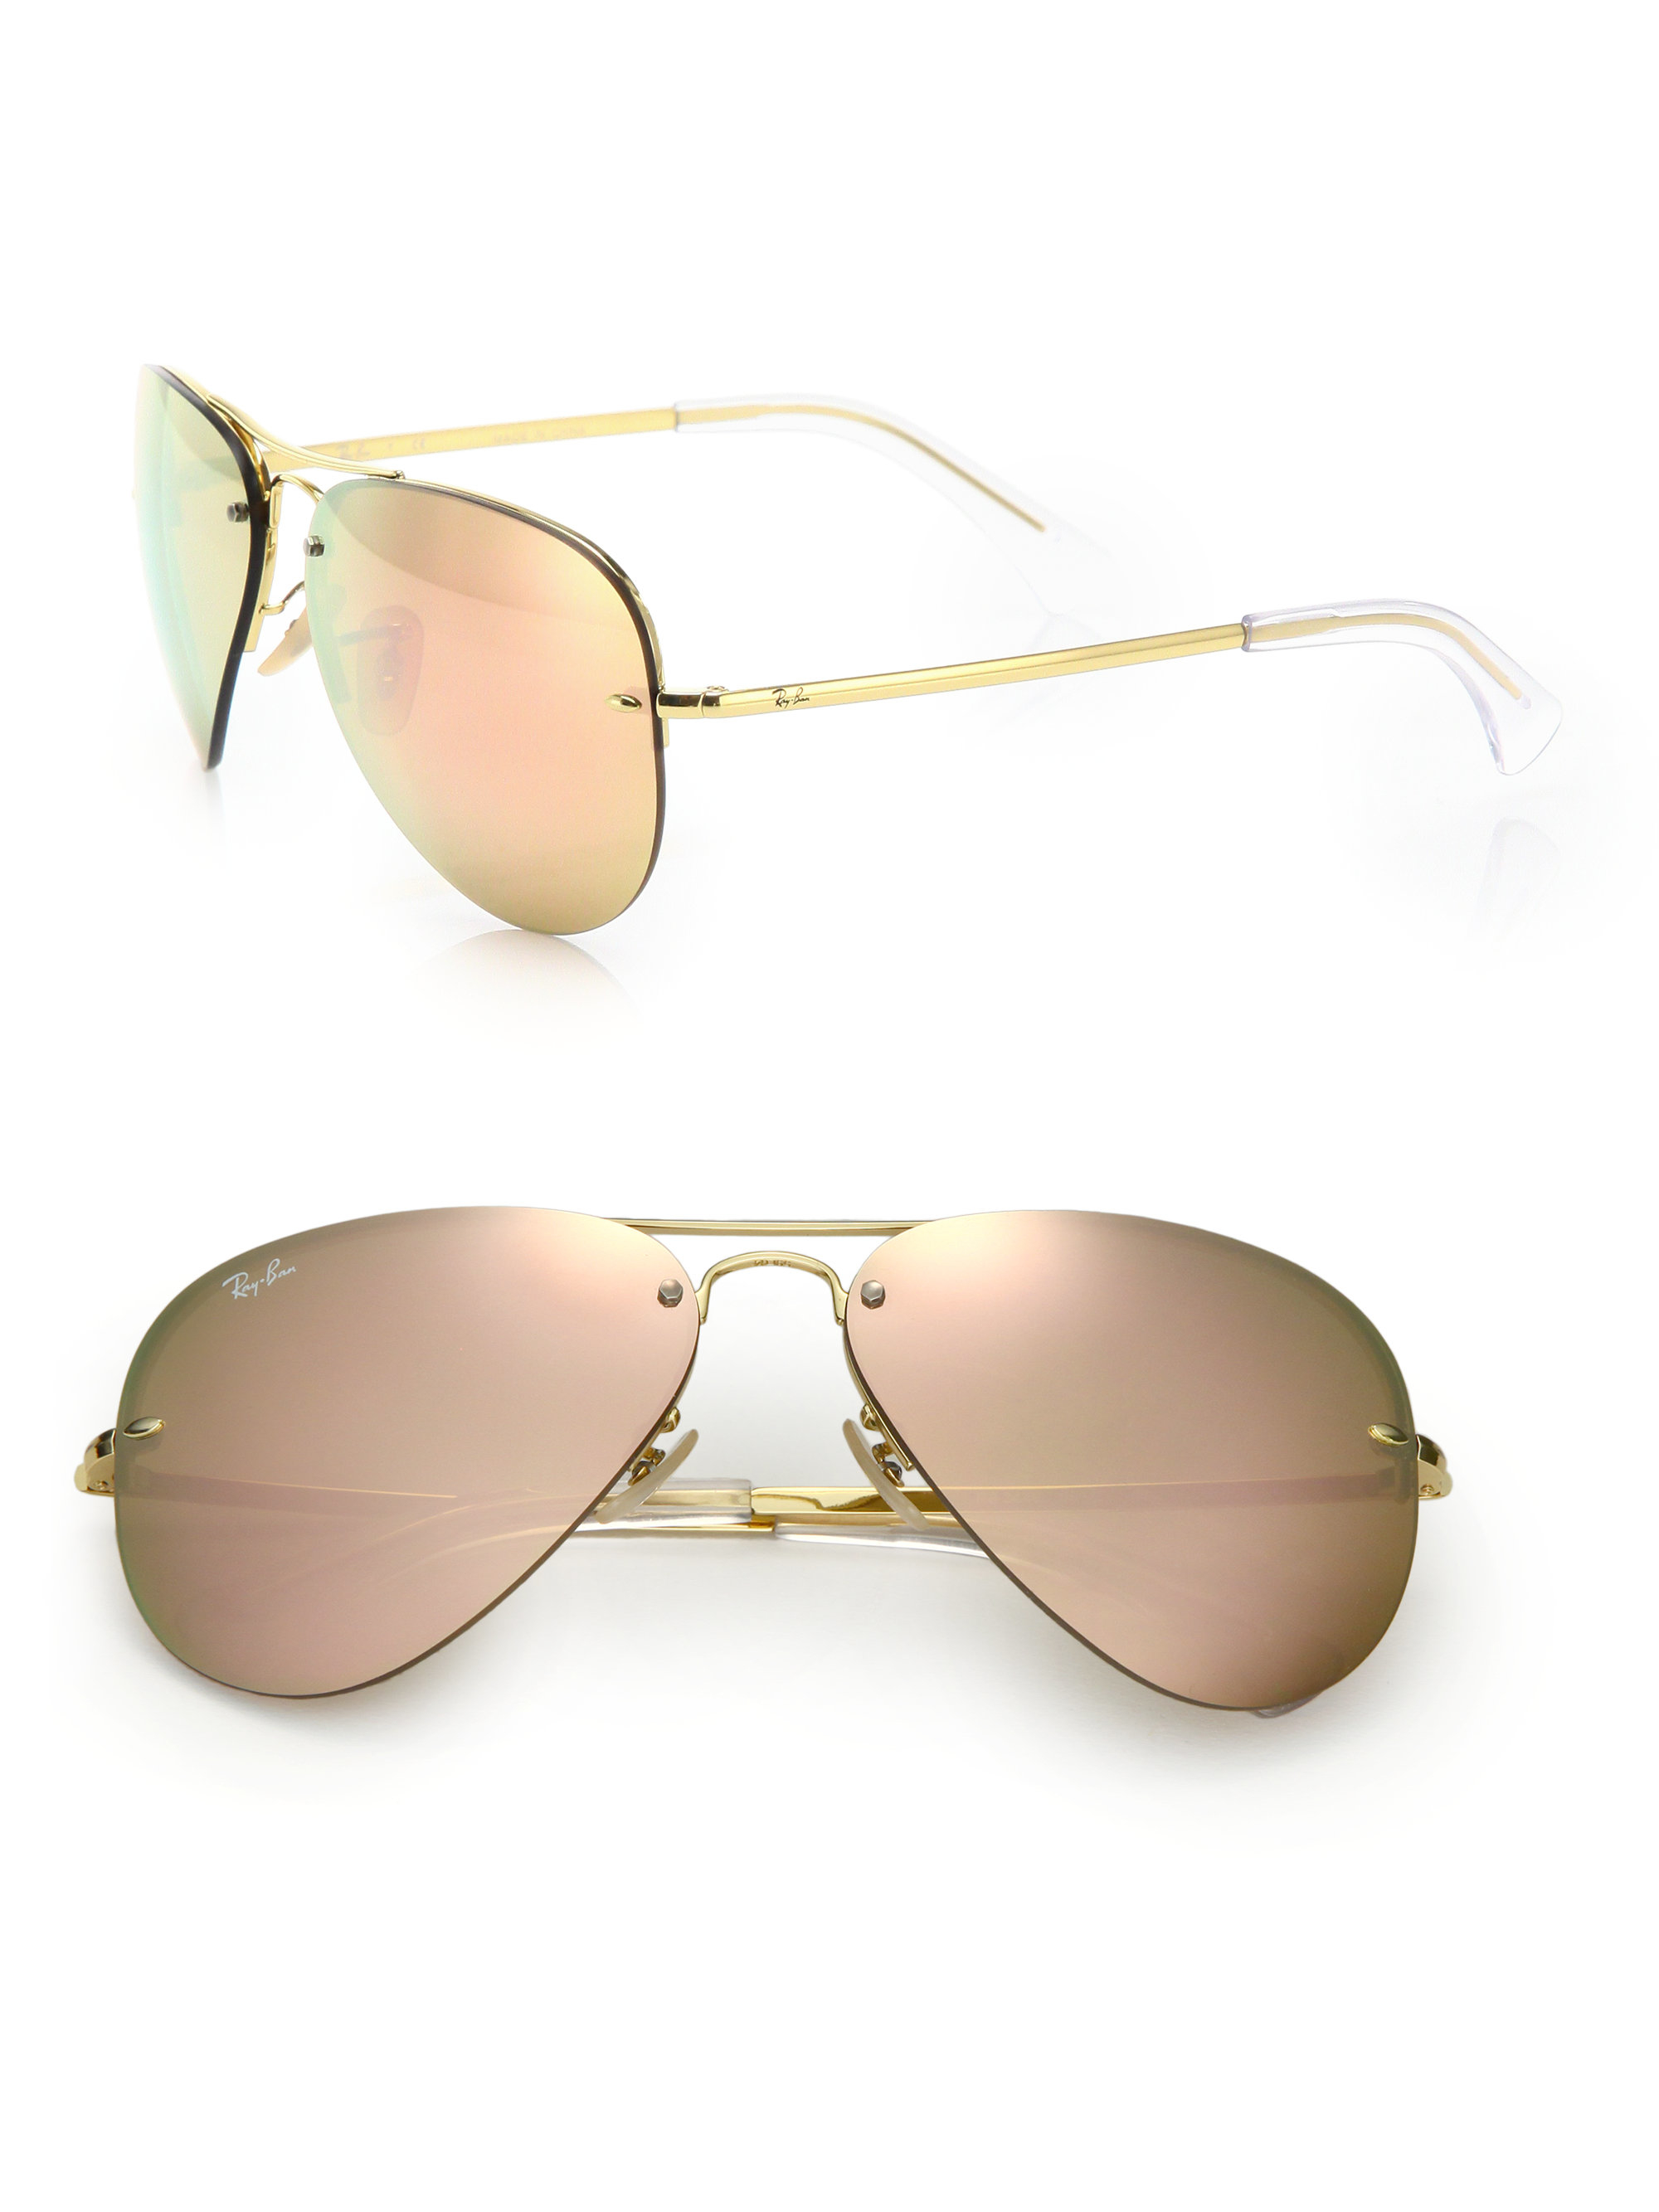 Ray Ban Mirrored Aviator Sunglasses  ray ban aviator reflective sunglasses